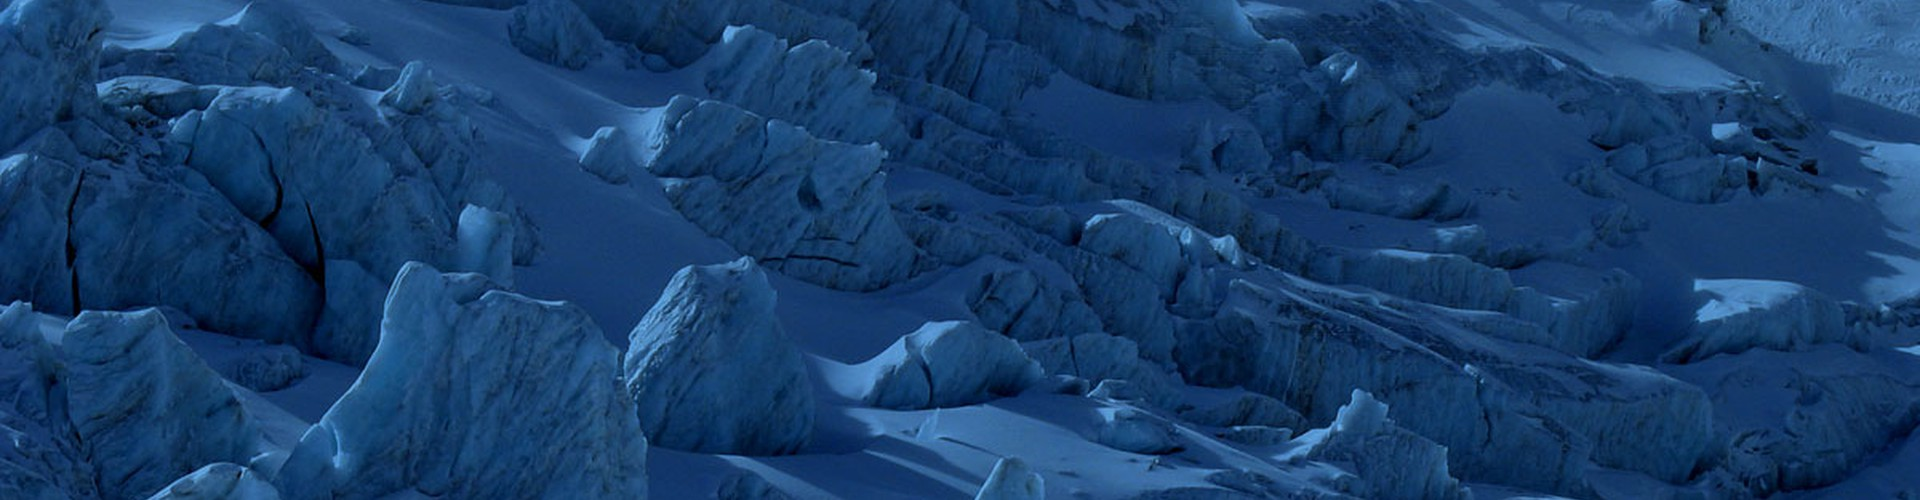 Bluesy glacier (Credit: Velio Coviello, distributed via imaggeo.egu.eu)